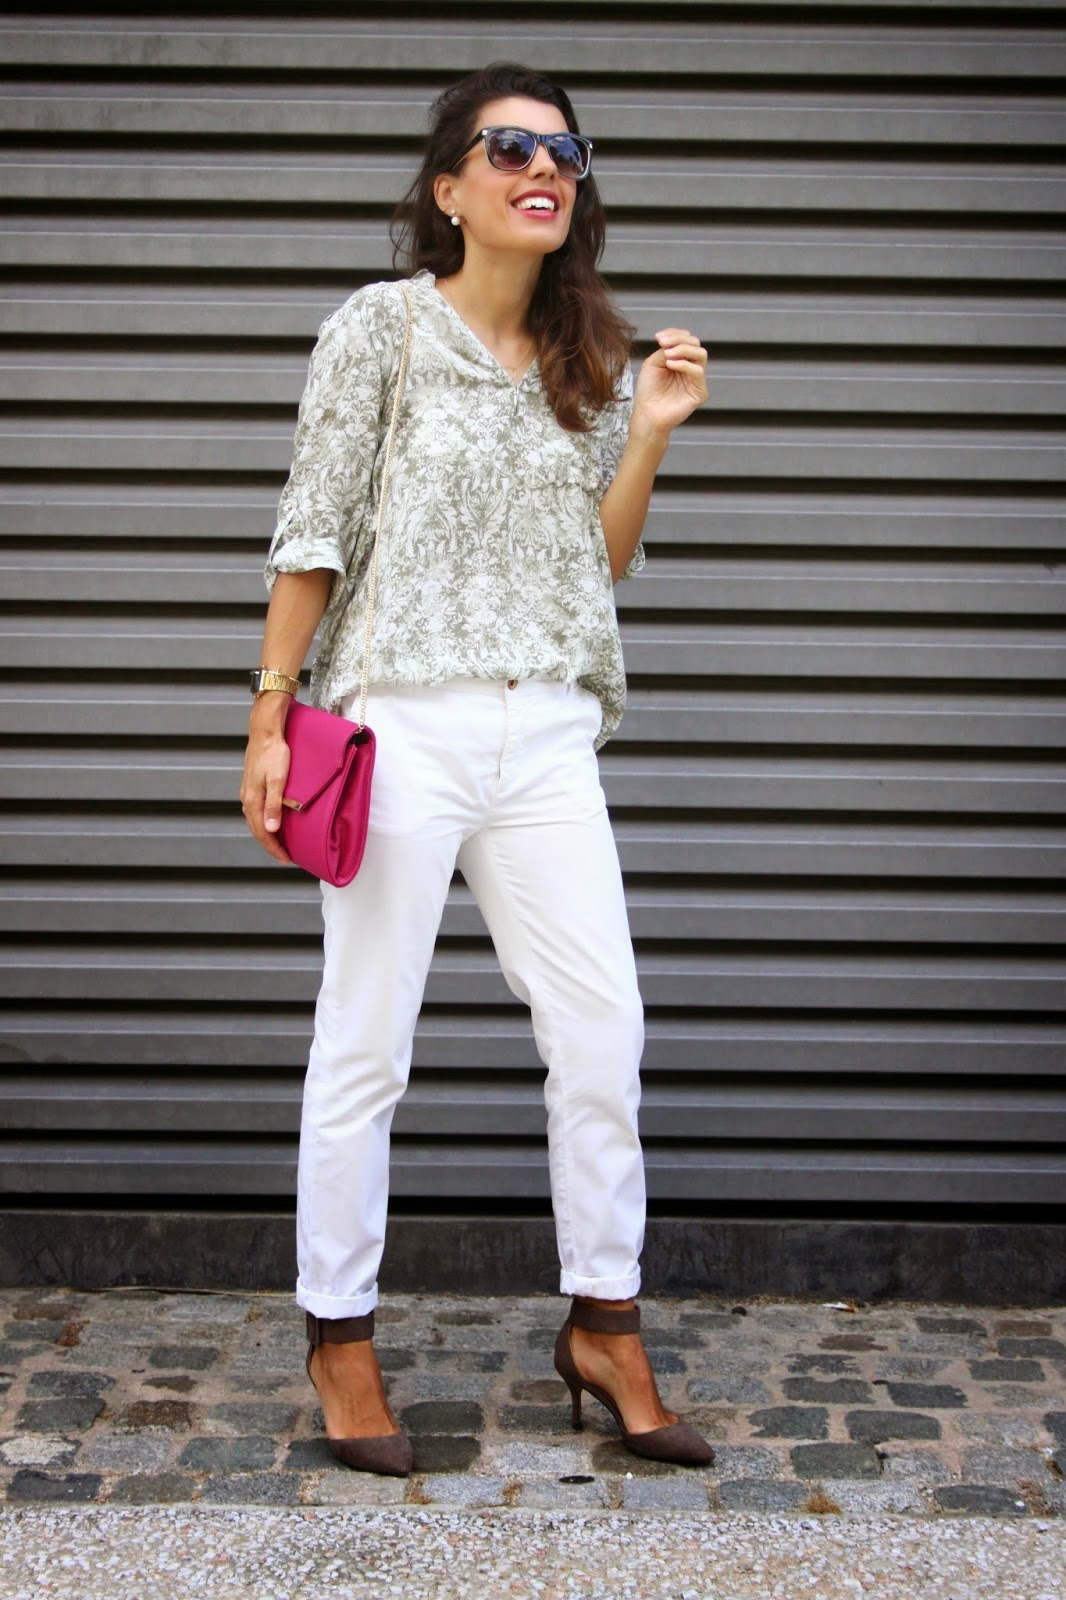 http://ilovefitametrica.blogspot.pt/2014/09/a-touch-of-color.html